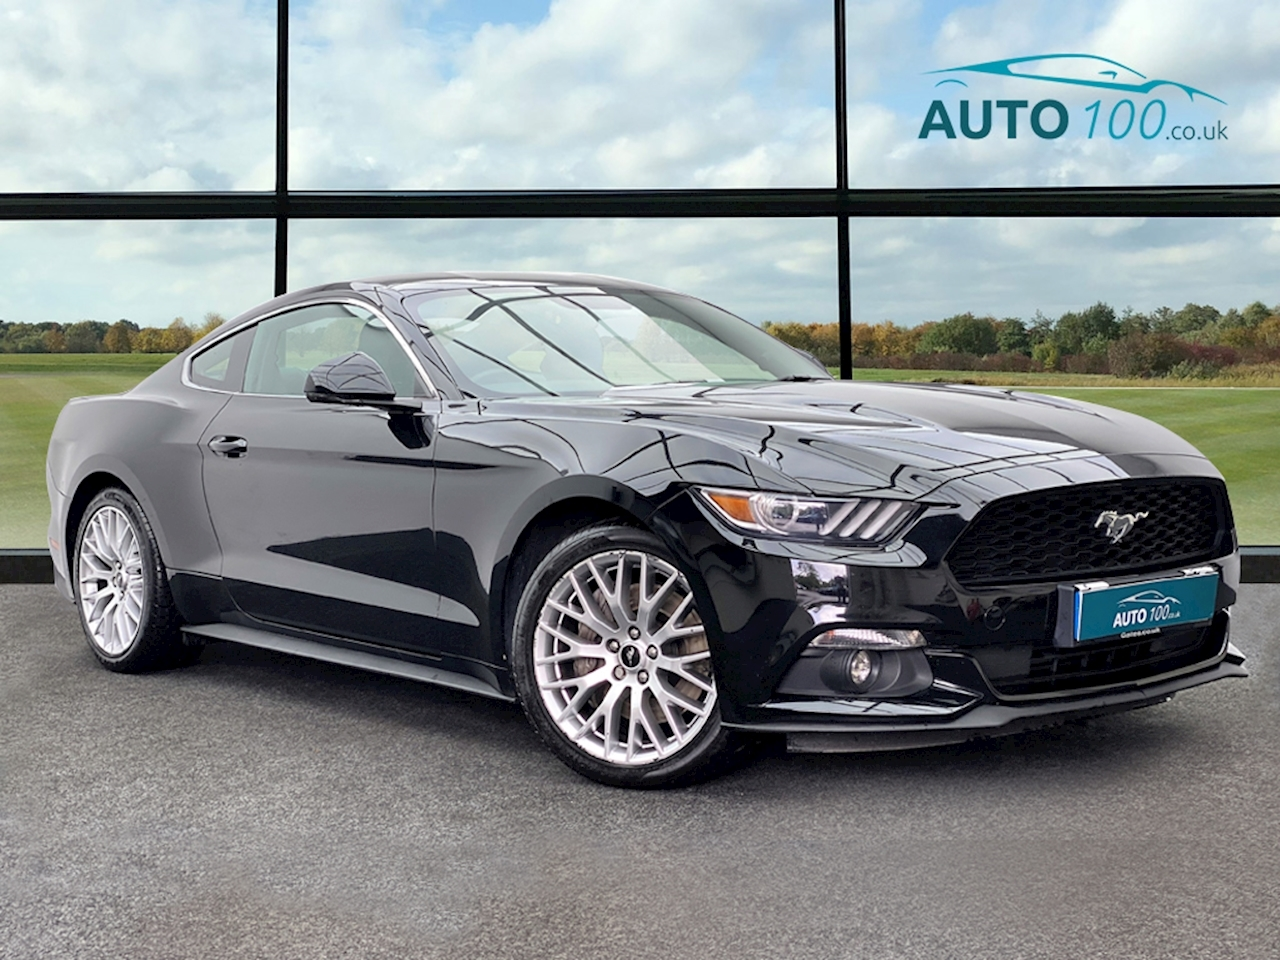 Mustang 2.3T EcoBoost Fastback 2dr Petrol (317 ps) Fastback 2.3 Manual Petrol